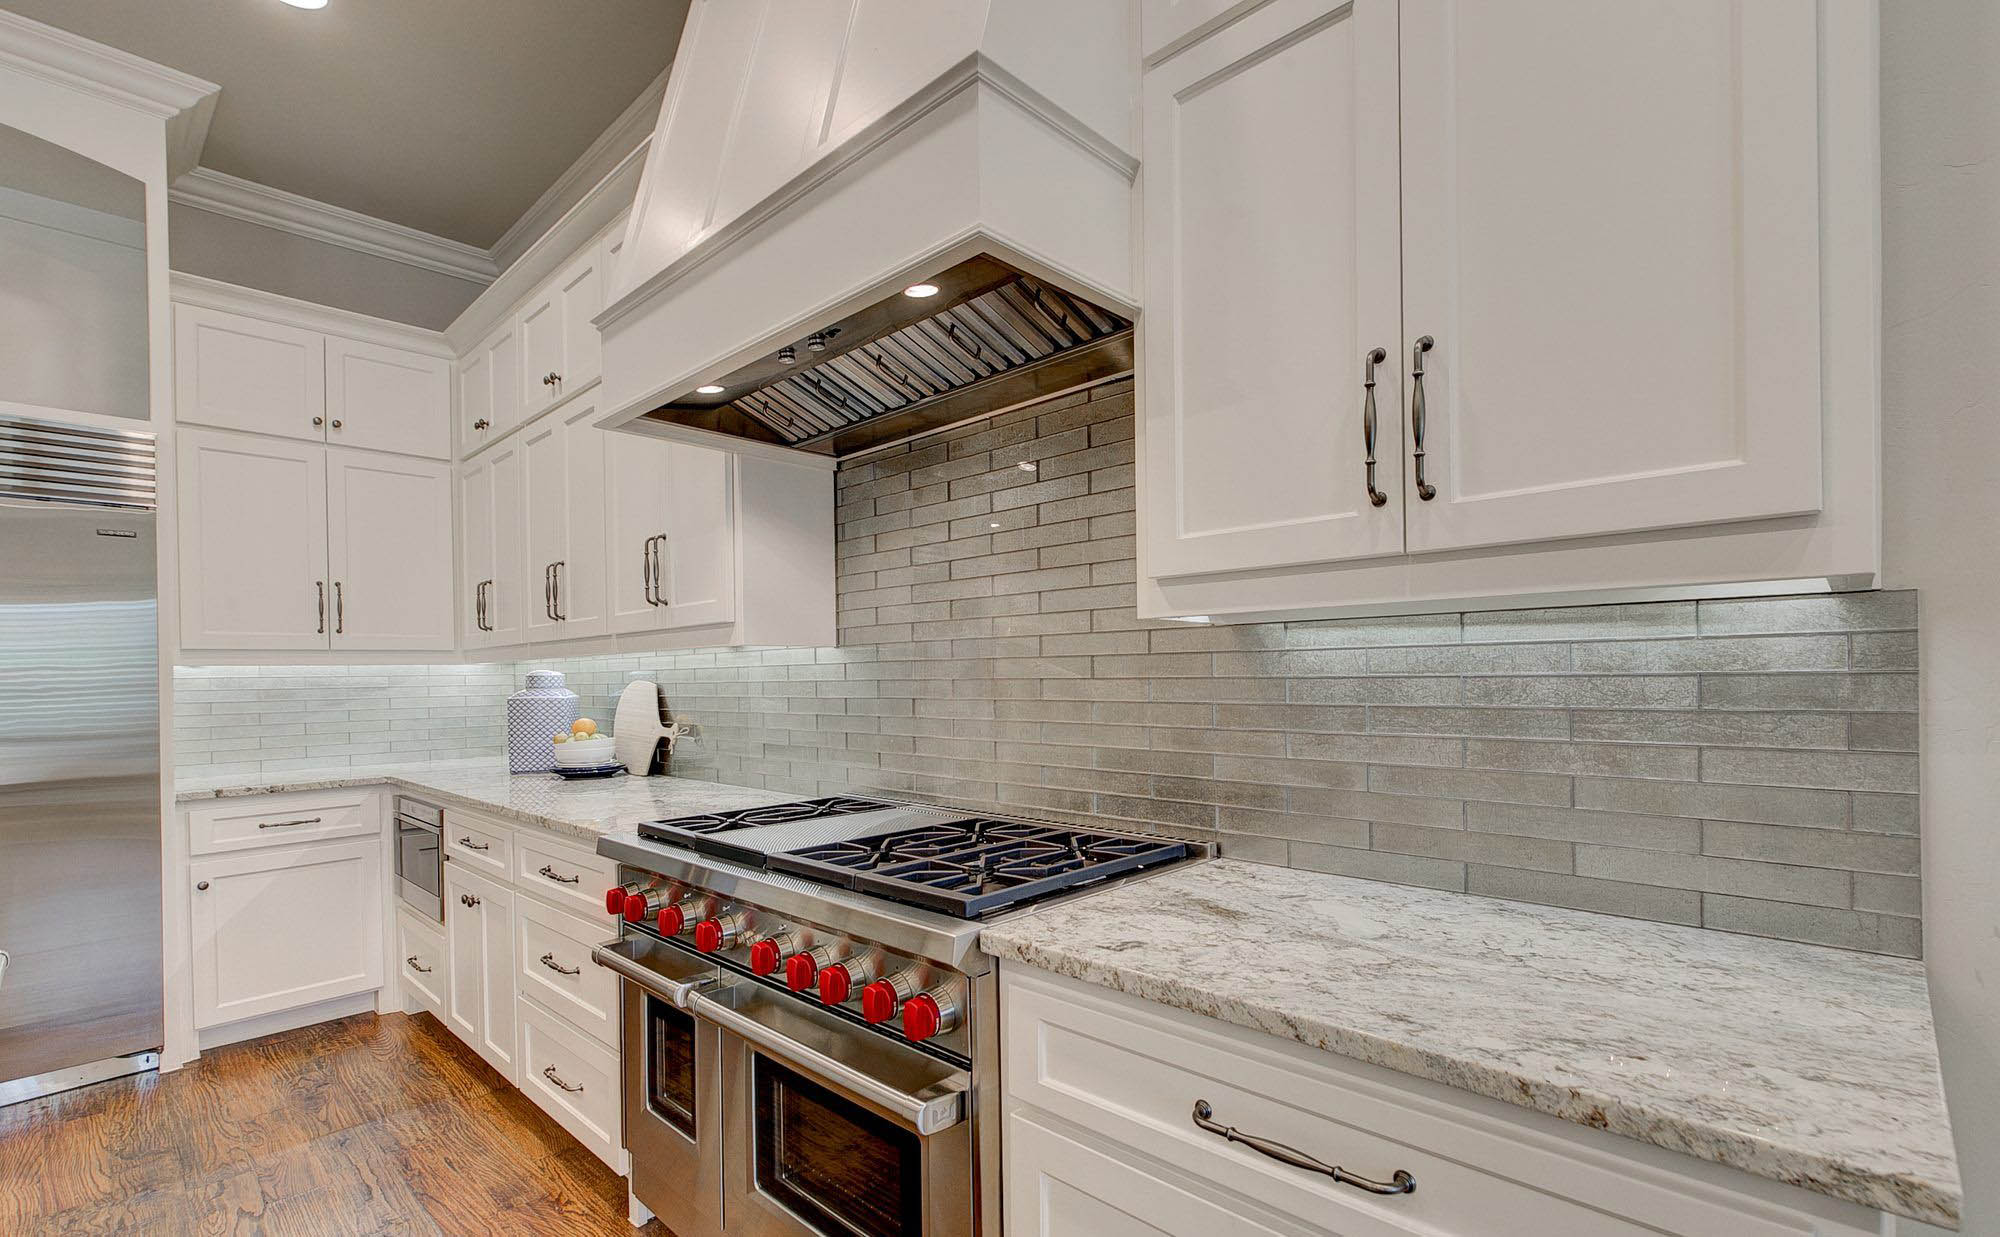 White granite countertops with white cabinets and gray tile backsplash. Wolf range with dual ovens. quartz vs granite.